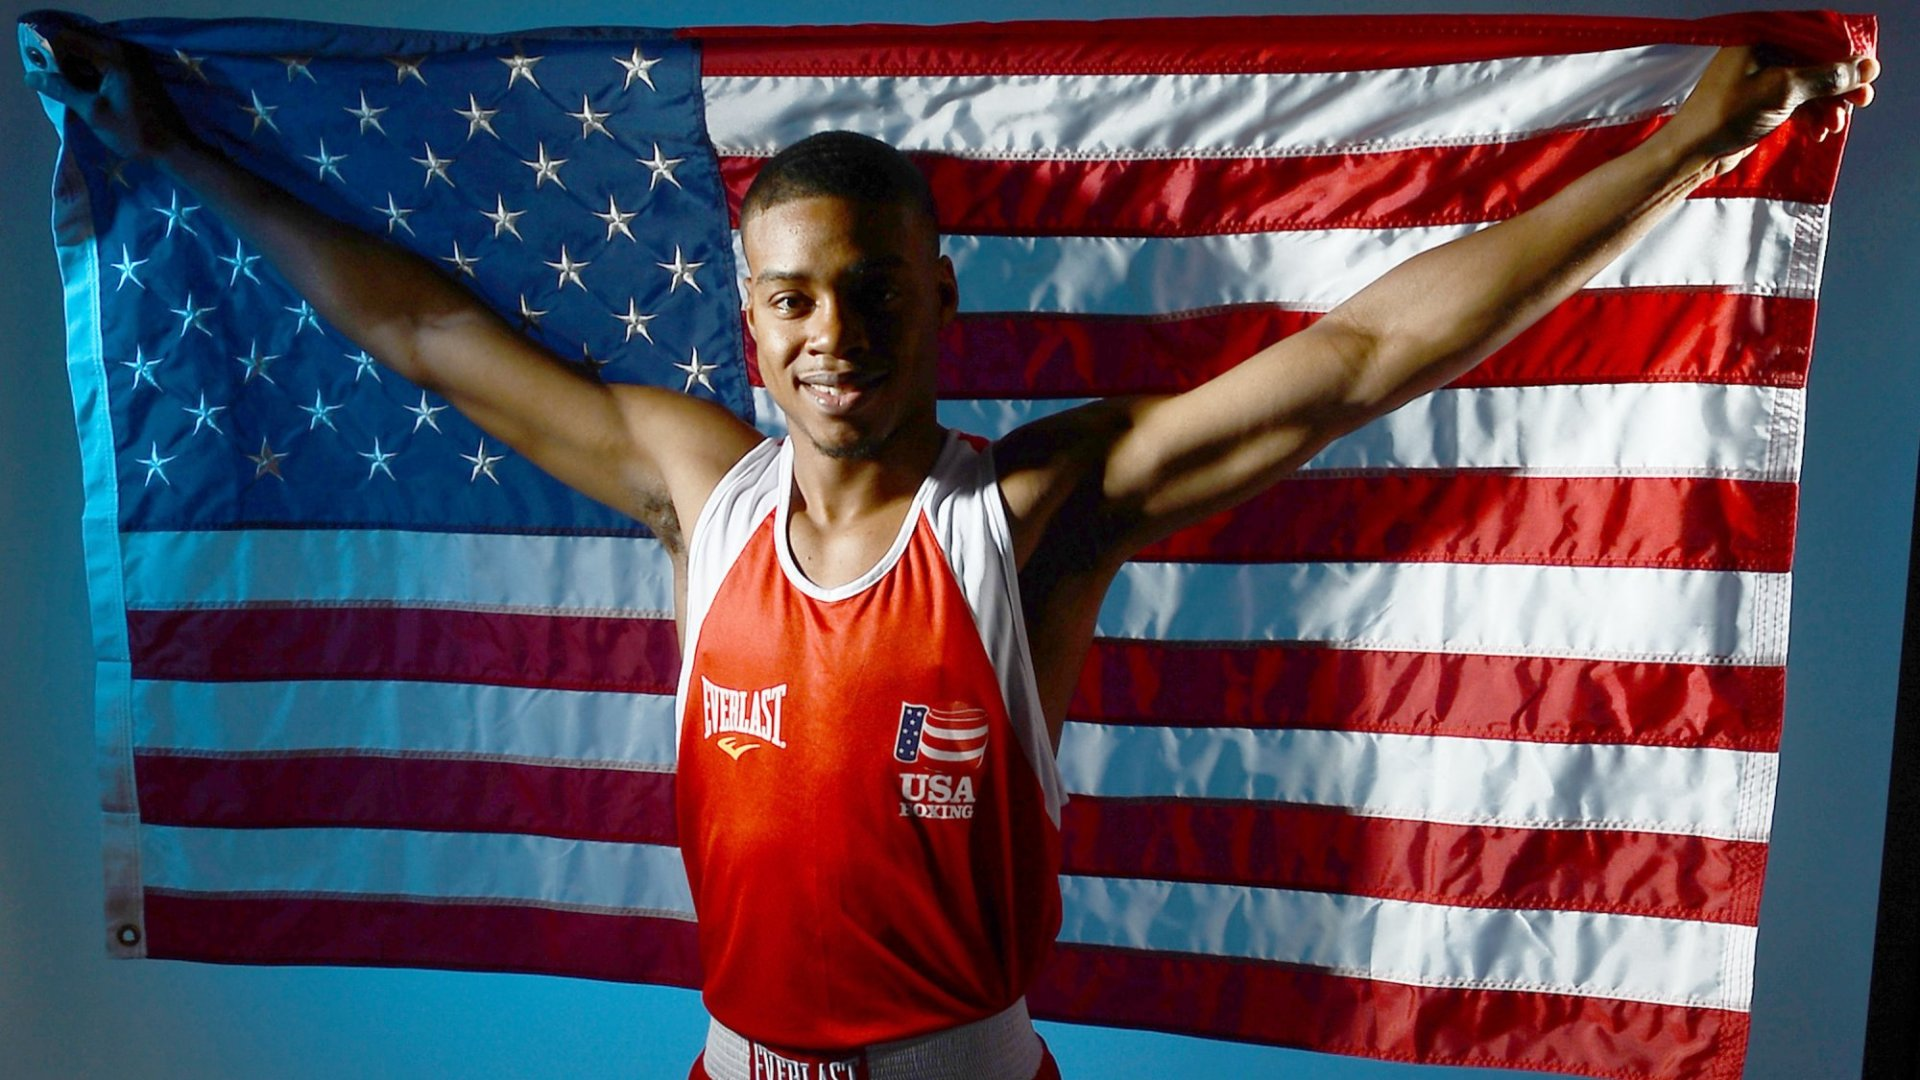 Errol Spence is the first boxing client for marketing agent Oren Hodak.